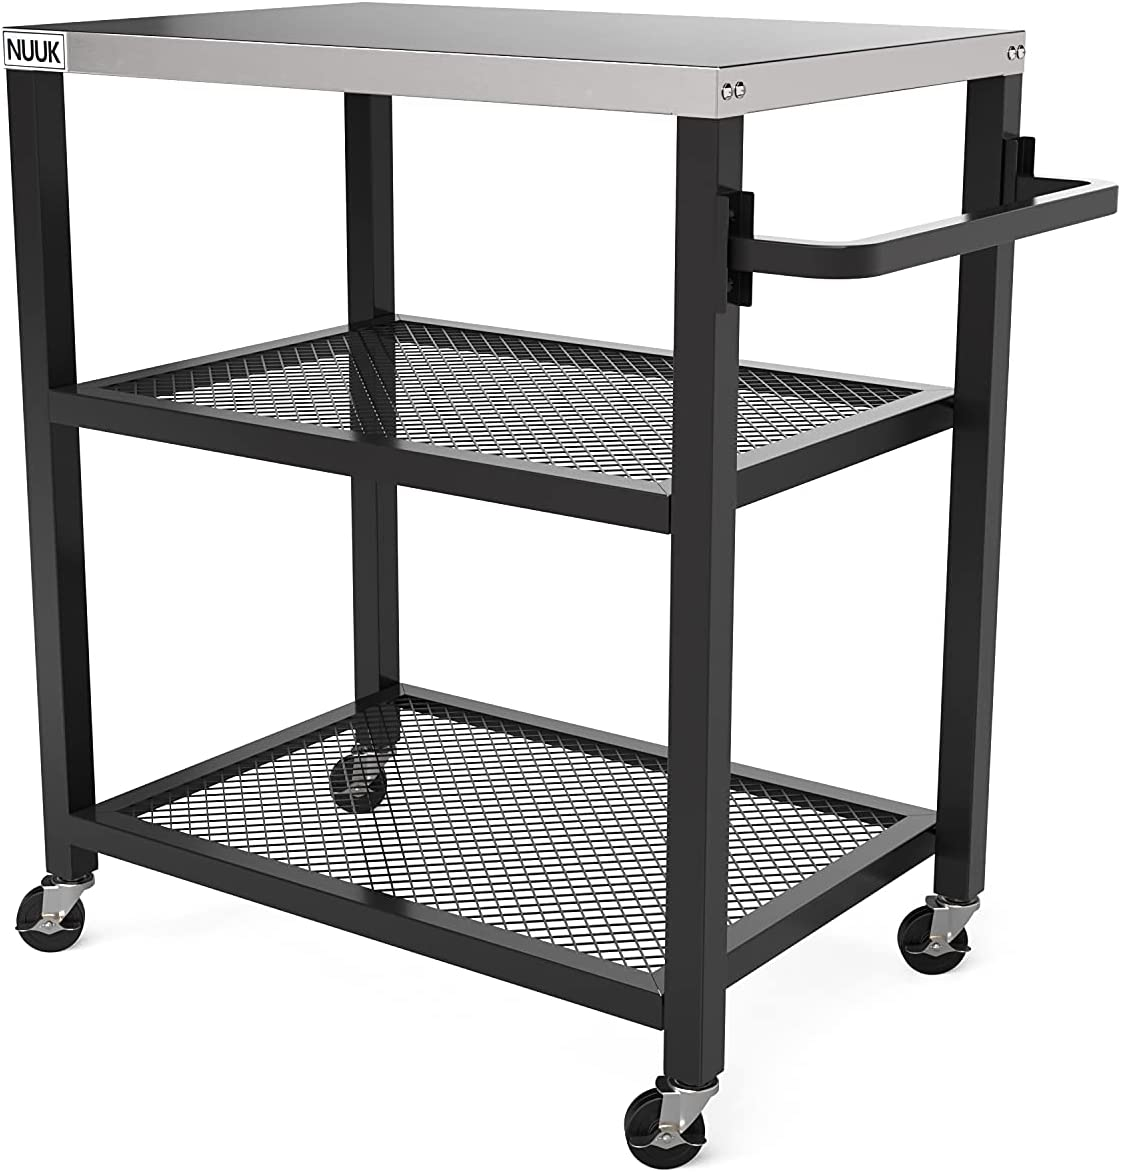 NUUK Three-Shelf Movable Outdoor Worktable, 16'' x 24'' Stainless Steel Commercial Kitchen Food Prep Table, Flattop Dining Cart Table, Outdoor Bar Table